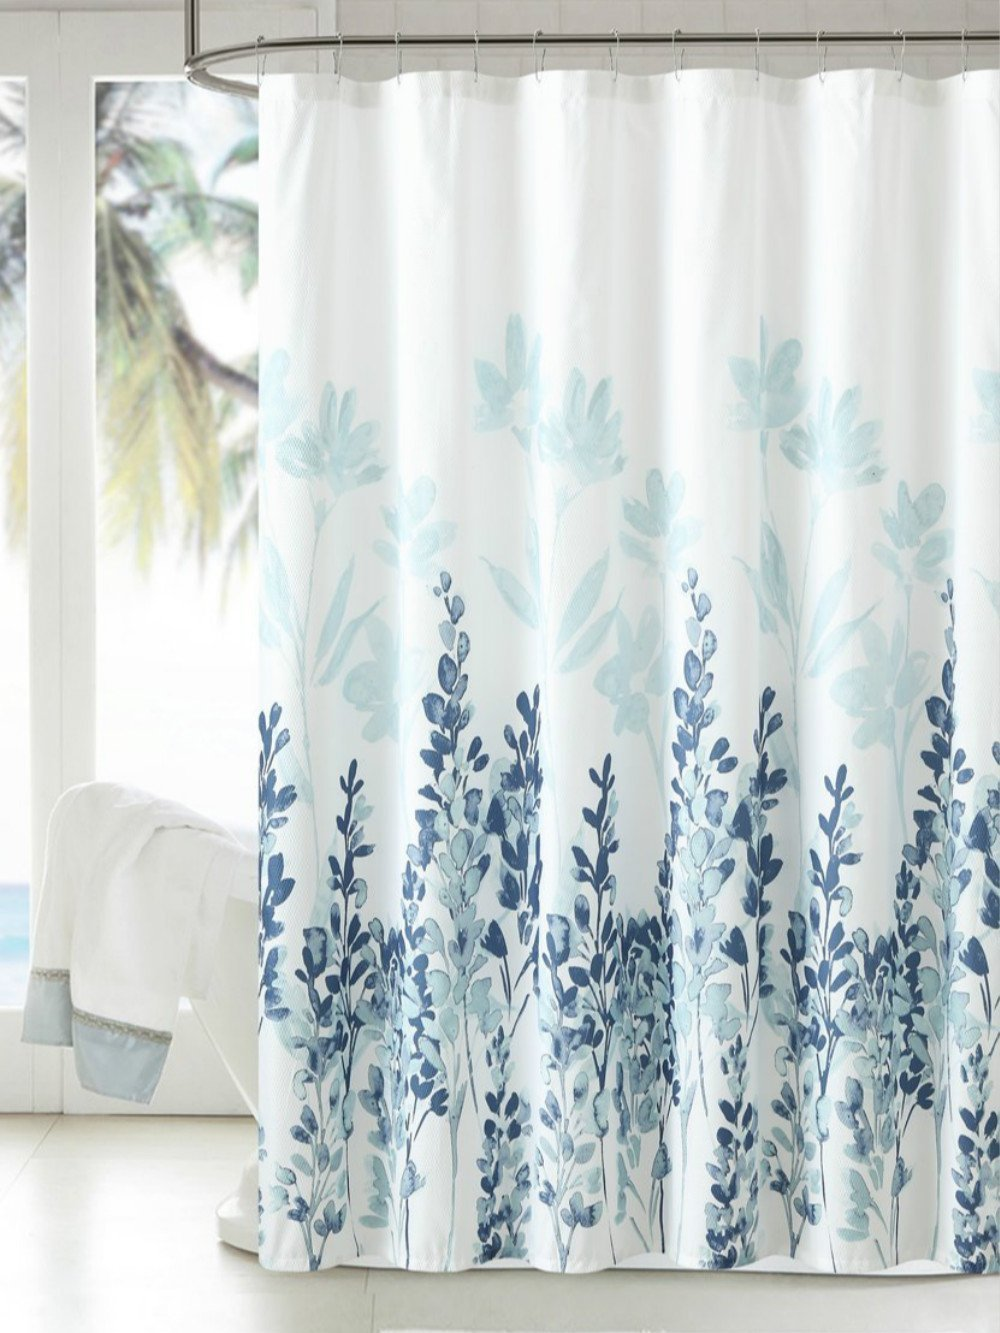 Tayyakoushi Japanese Style Flowers Shower Curtain Liner Fabric Shower Curtain Waterproof Polyester Bathroom Curtain With 12 Hooks Teal Blue 72 X